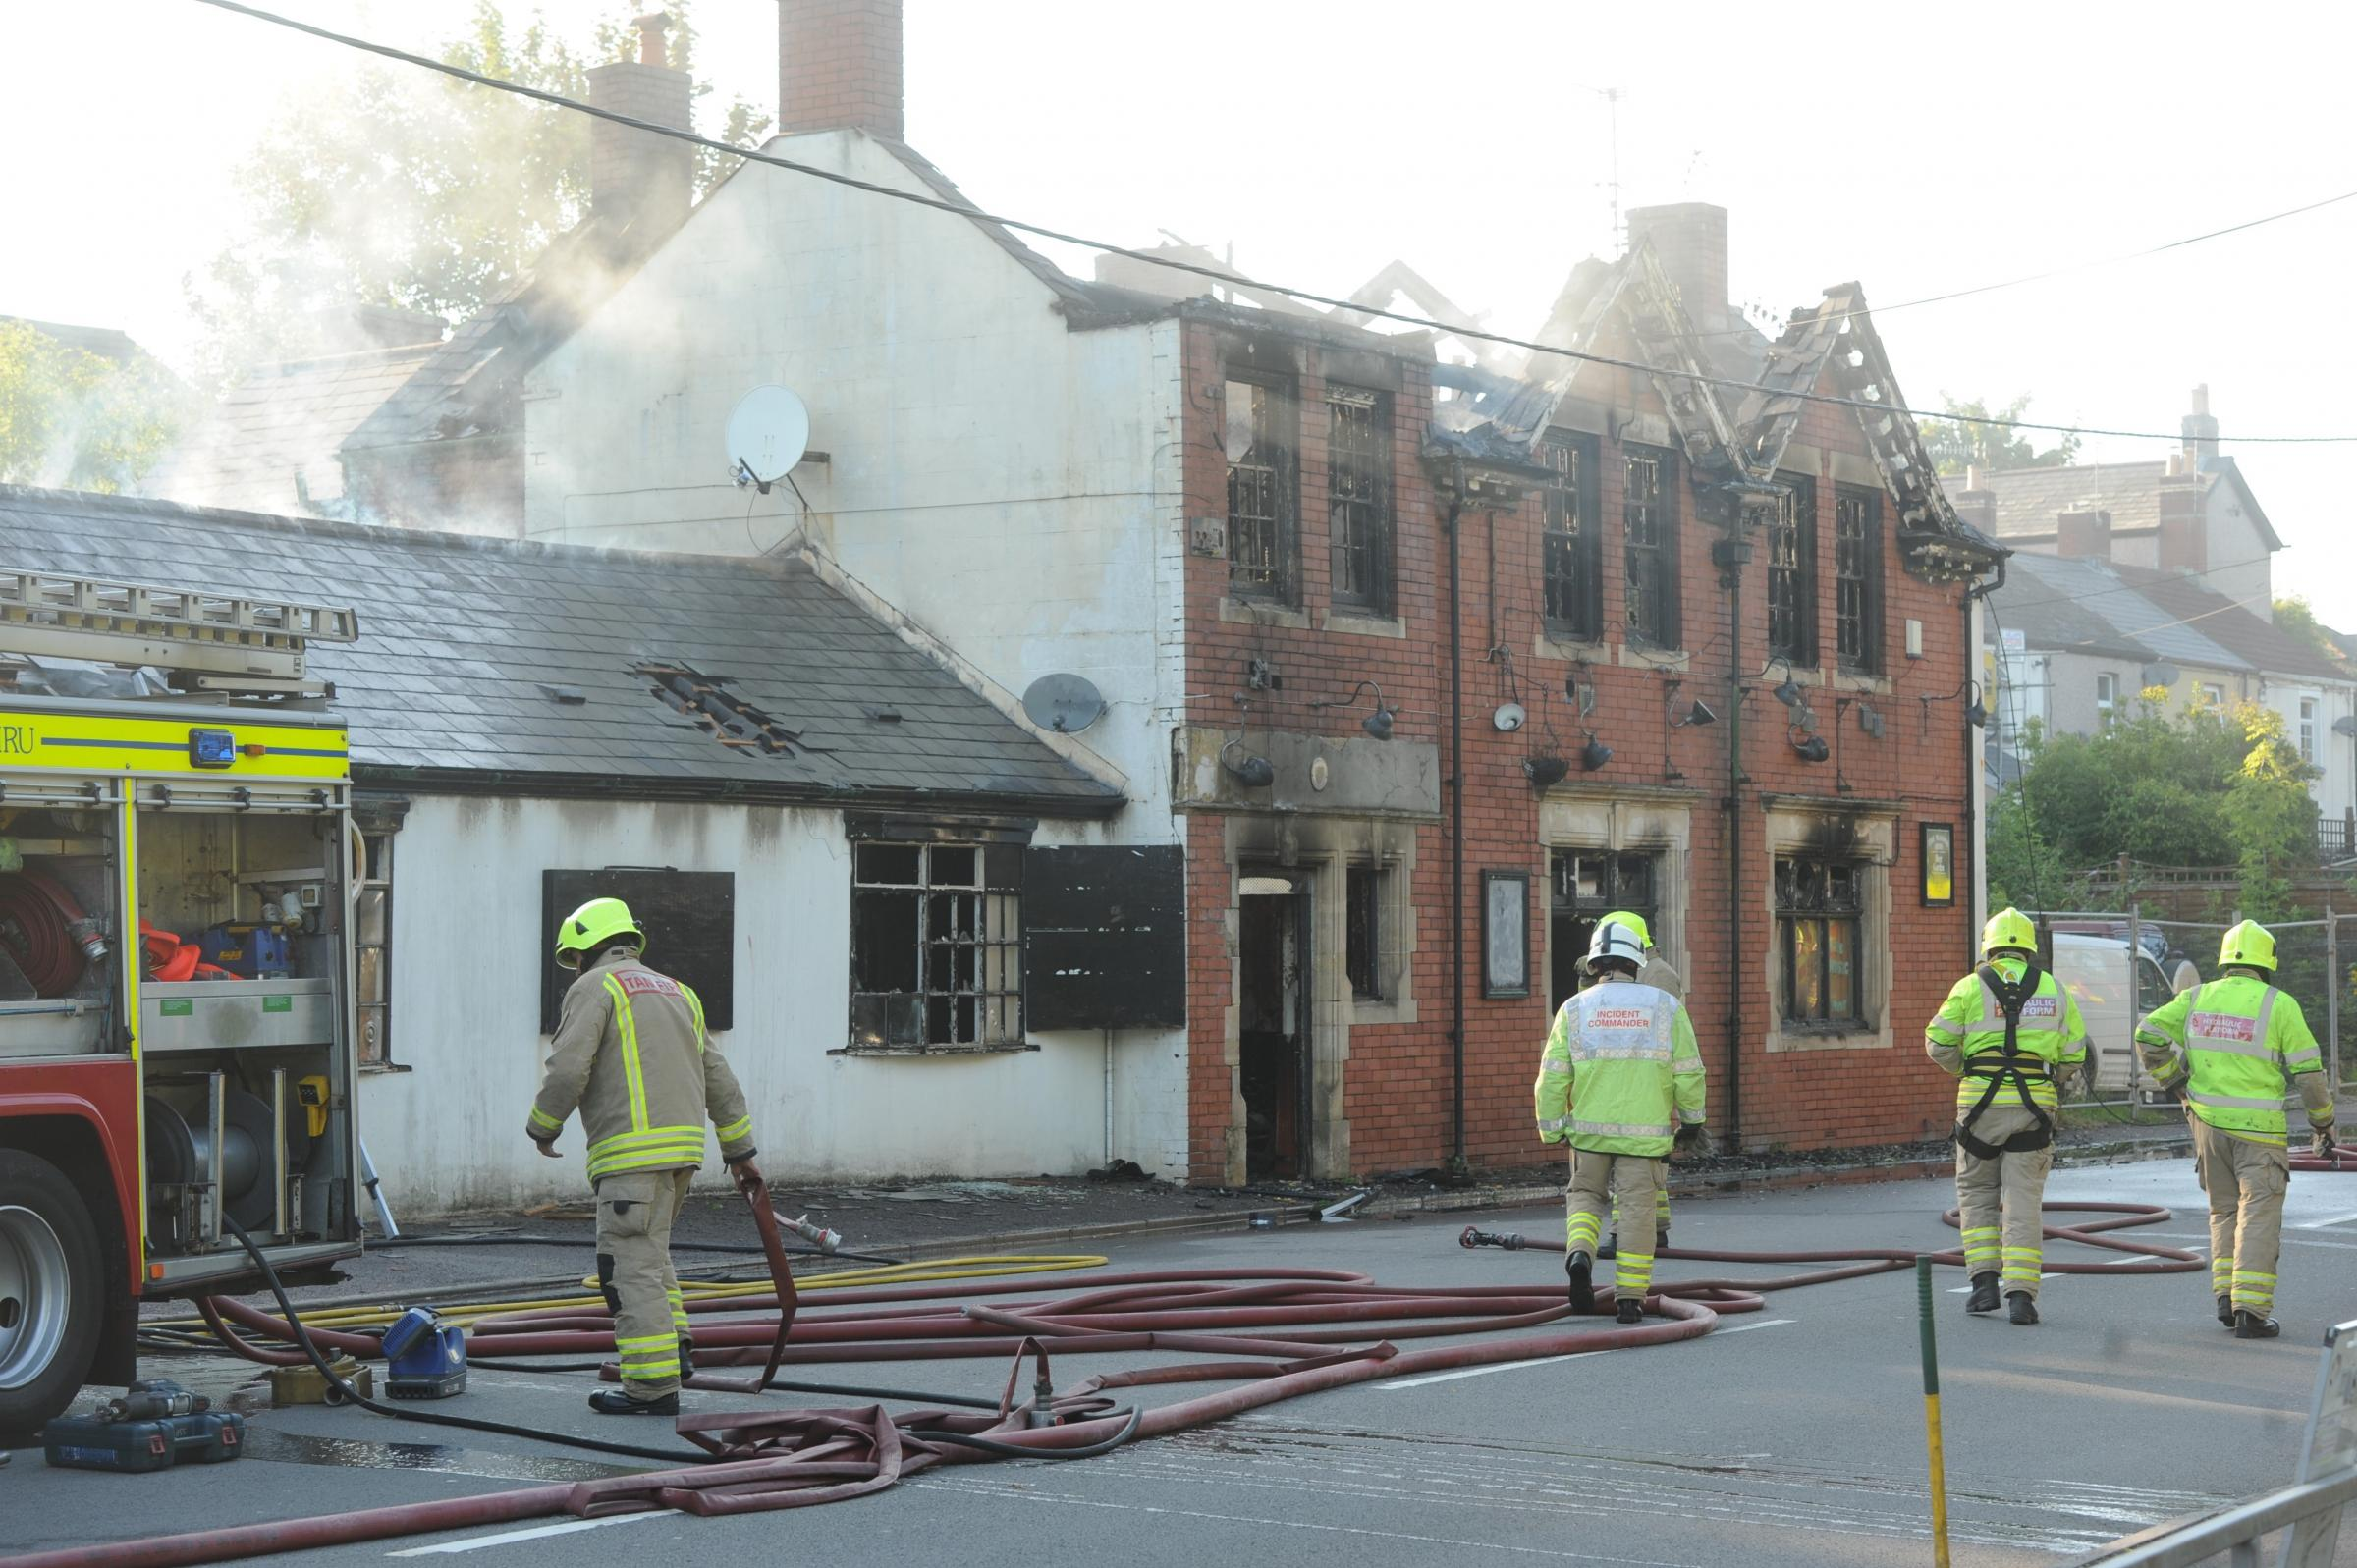 Fire crews attend the scene of a fire at the derelict Masons Arms in Griffithstown (8934732)